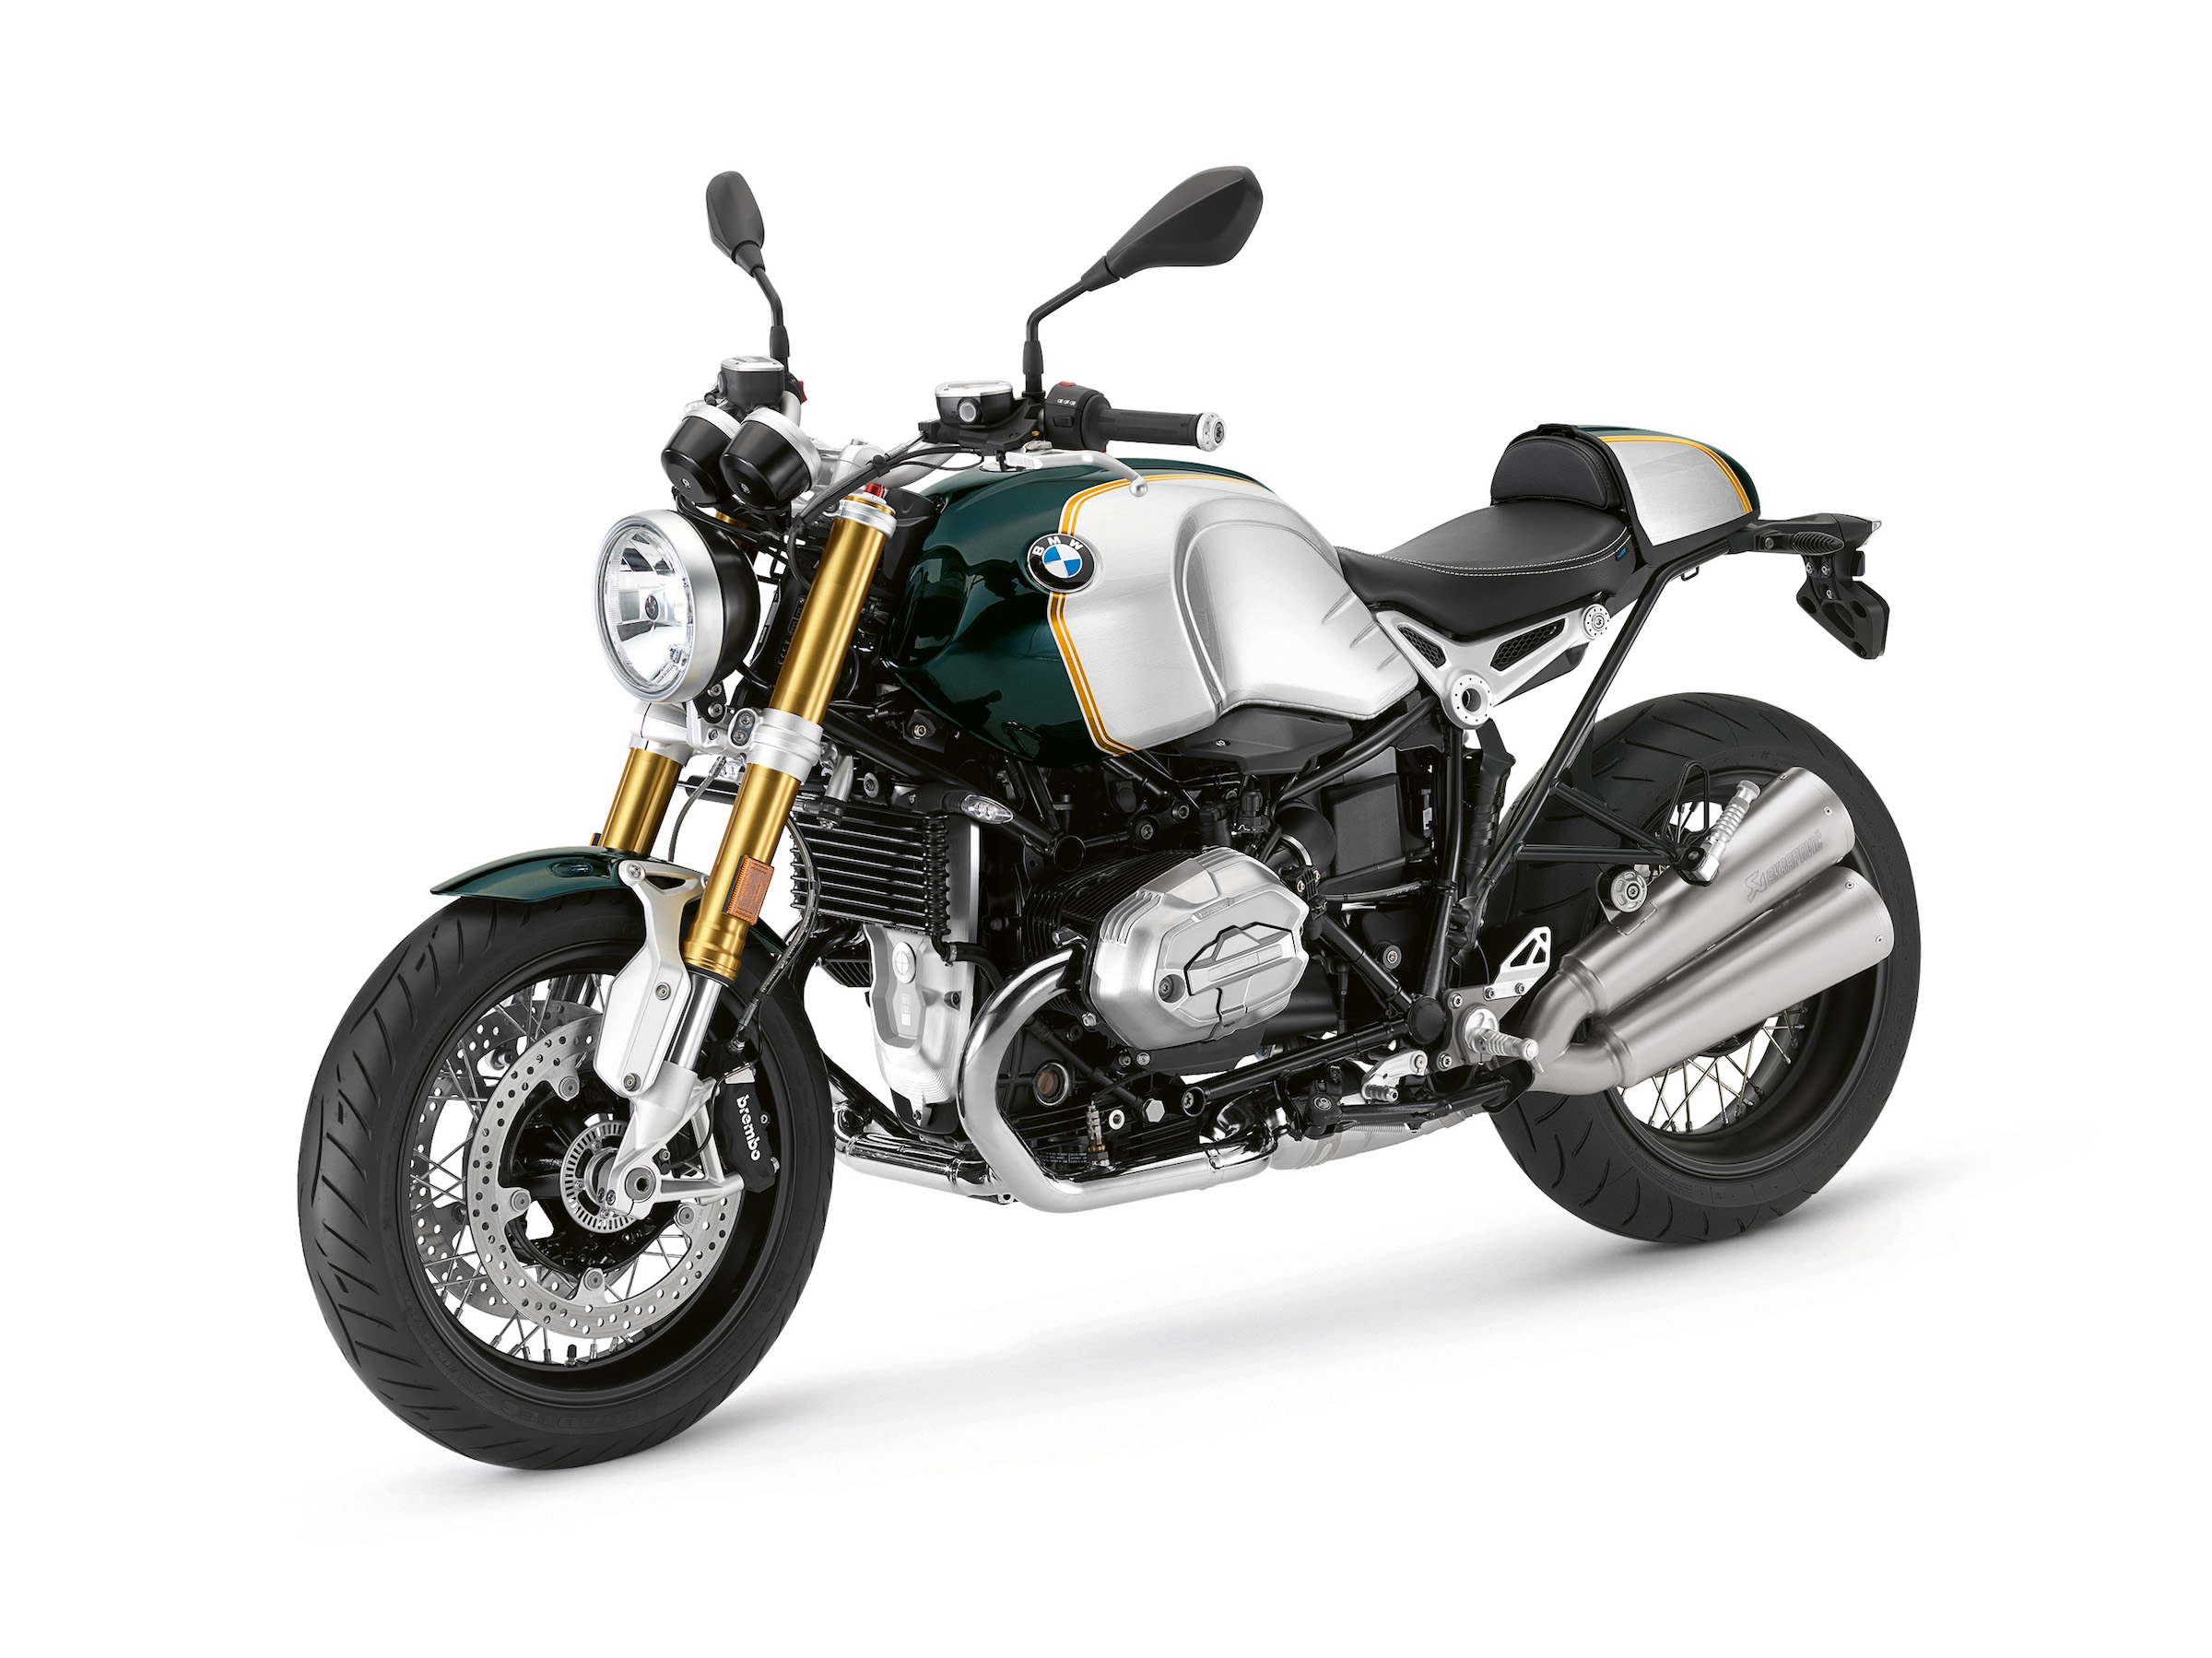 BMW R nineT Scrambler Mission Impossible Fallout